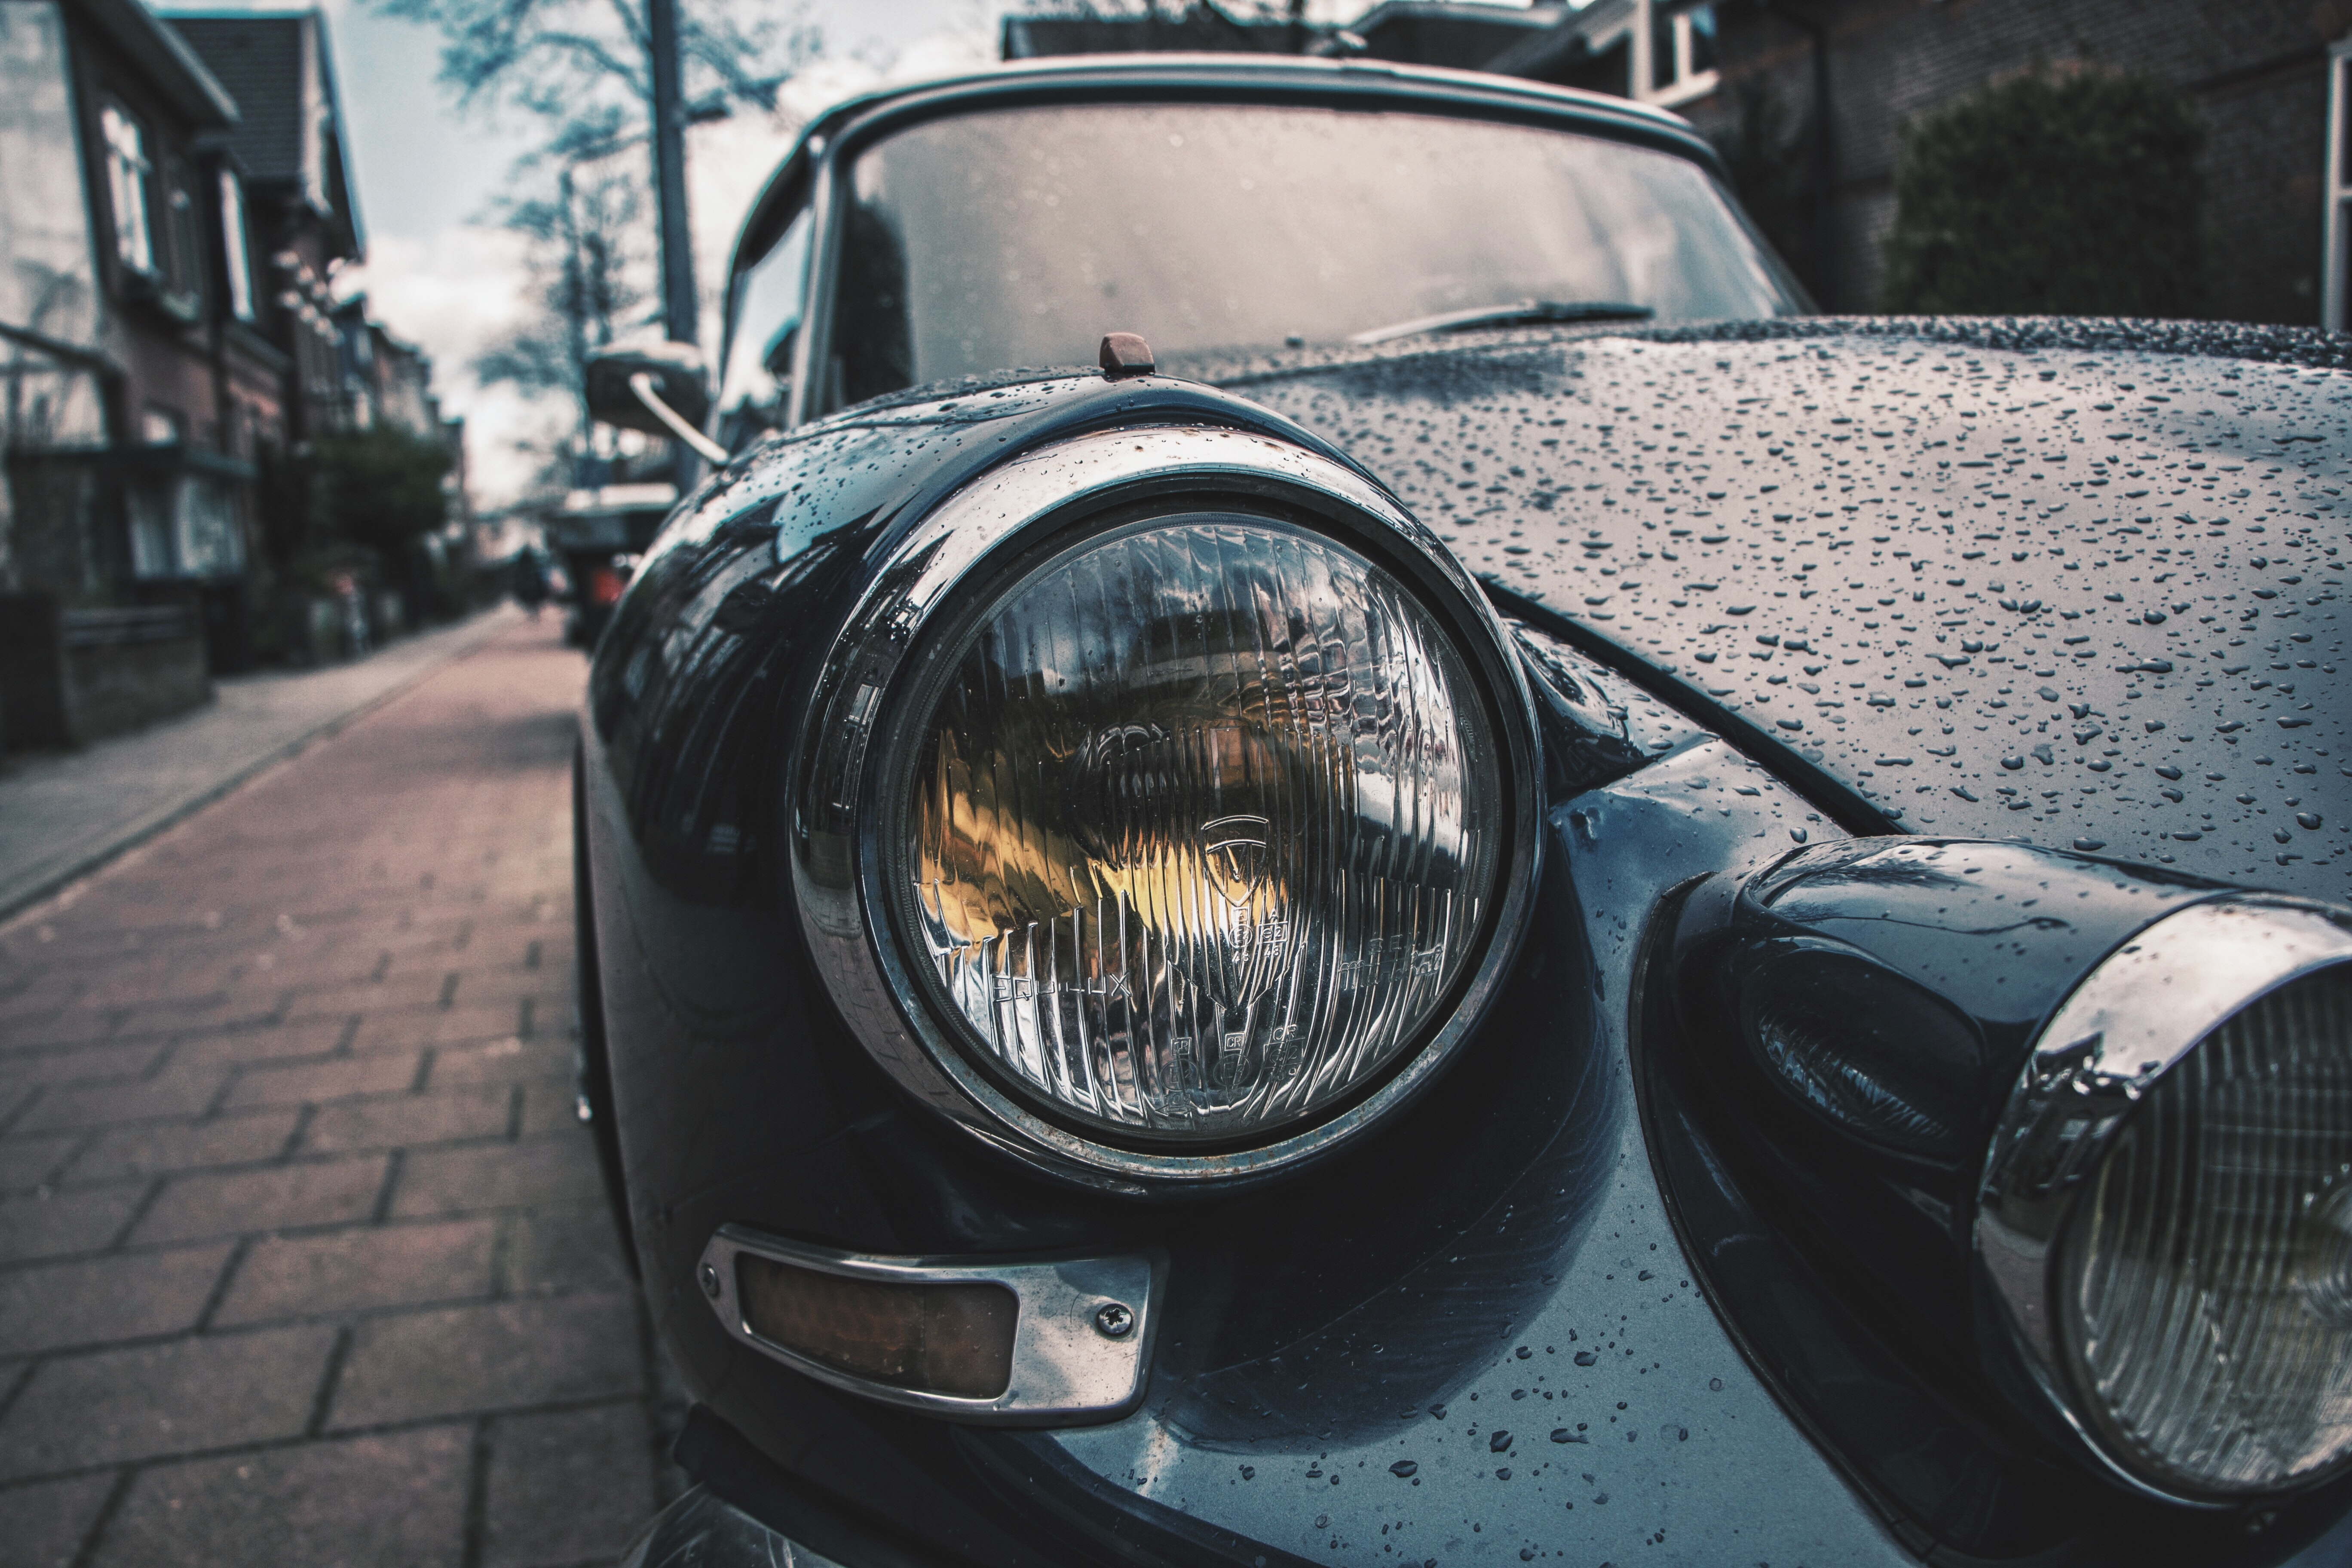 The headlight of the vintage car in the rain.